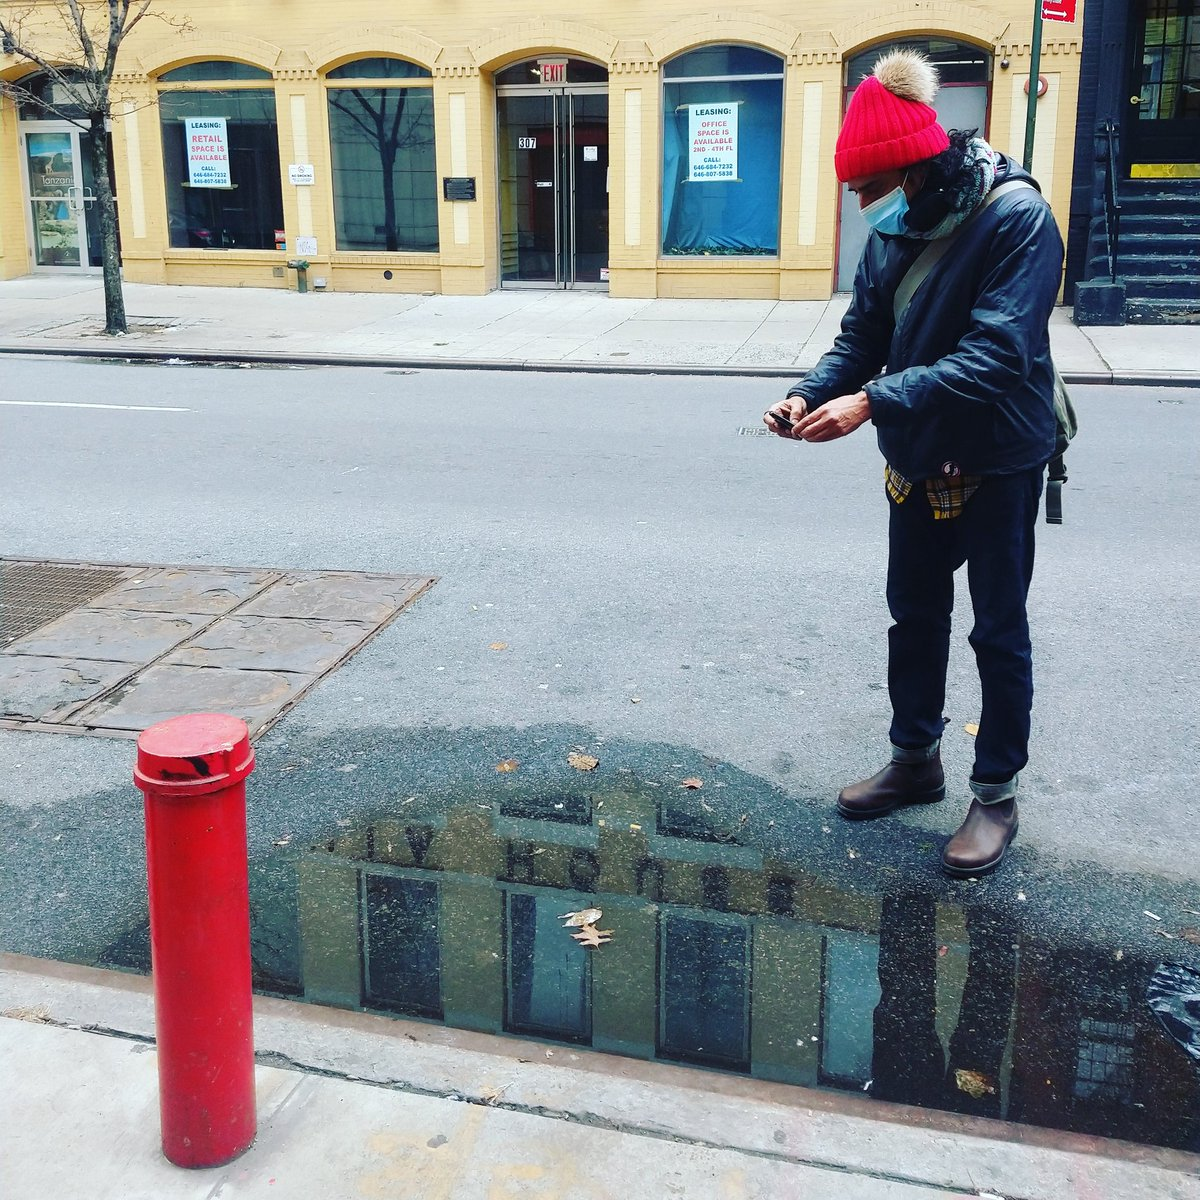 For those of you on Instagram:  Check out my friend and artist Vijay Balakrishnan's extraordinary series called 'puddlesofmanhattan' [ig: @puddlesofmanhattan]. This was him last week when we hung out.      #nyc #streetphotography #manhattan